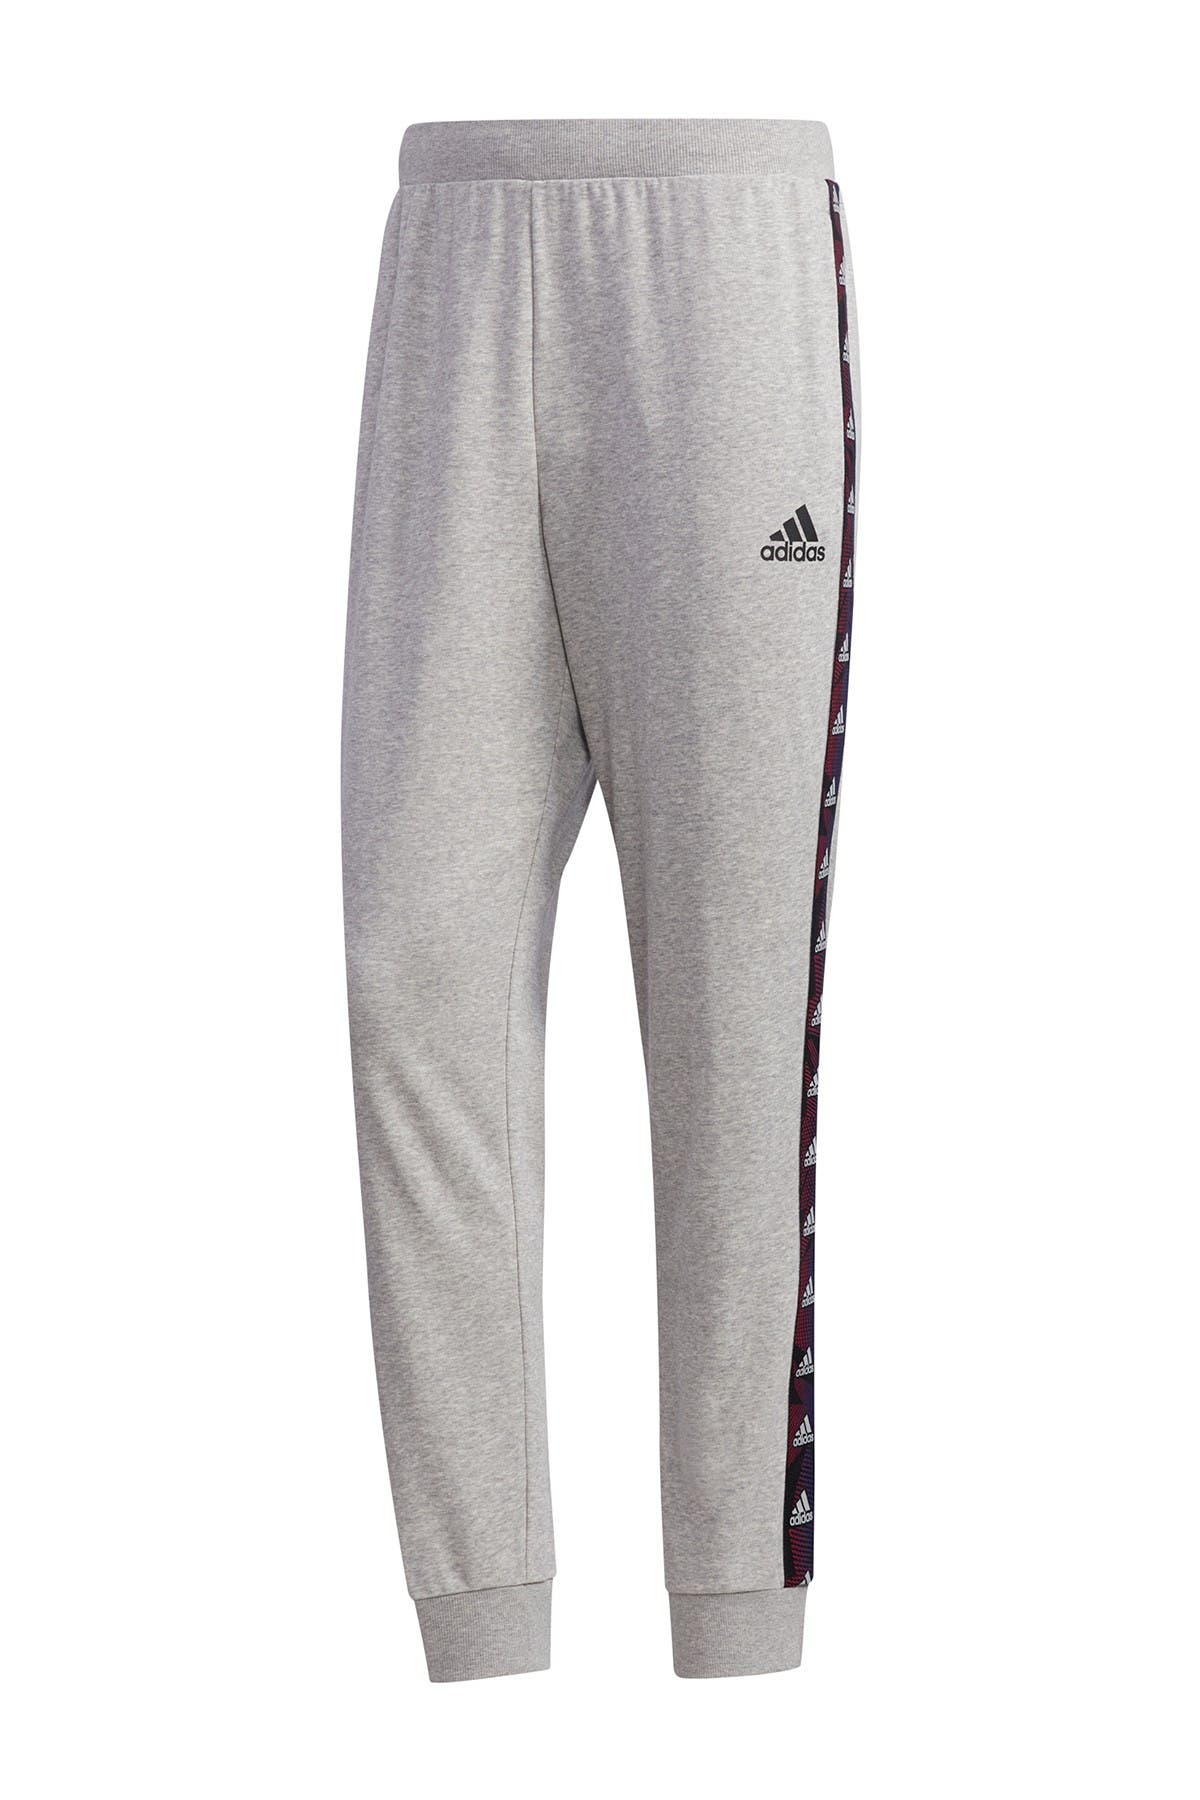 Image of adidas Essentials 3-Stripes Tapered Cuffed Pants